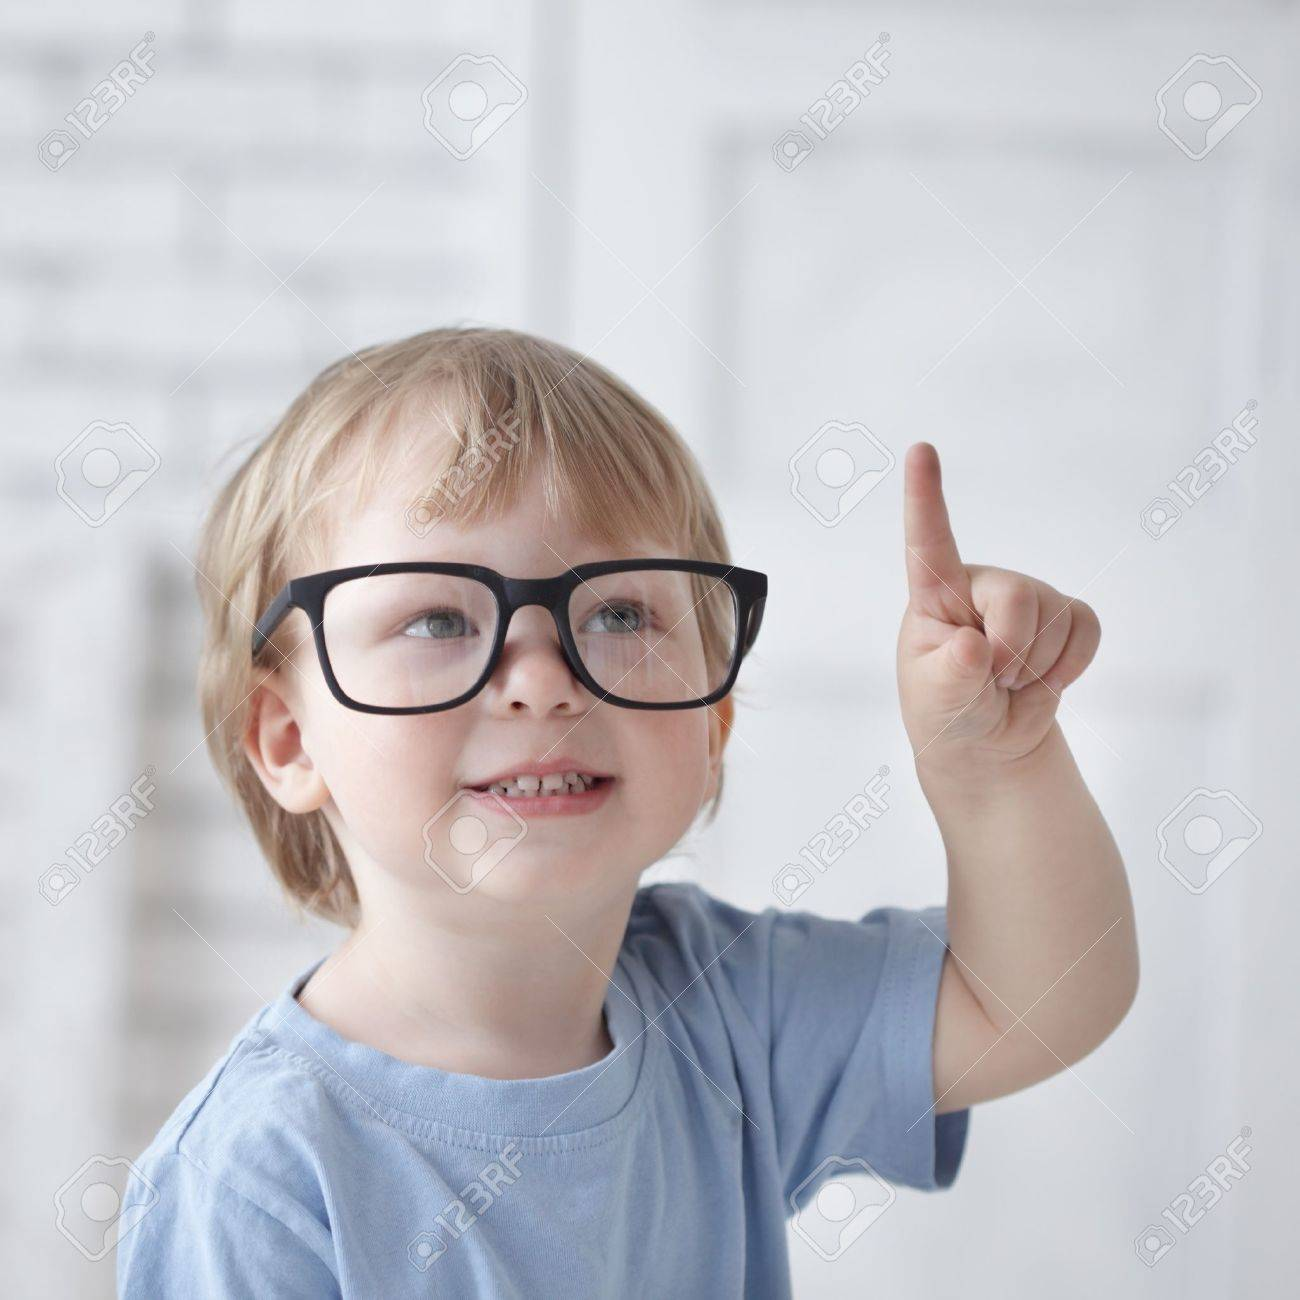 clever baby in glasses - 19382759